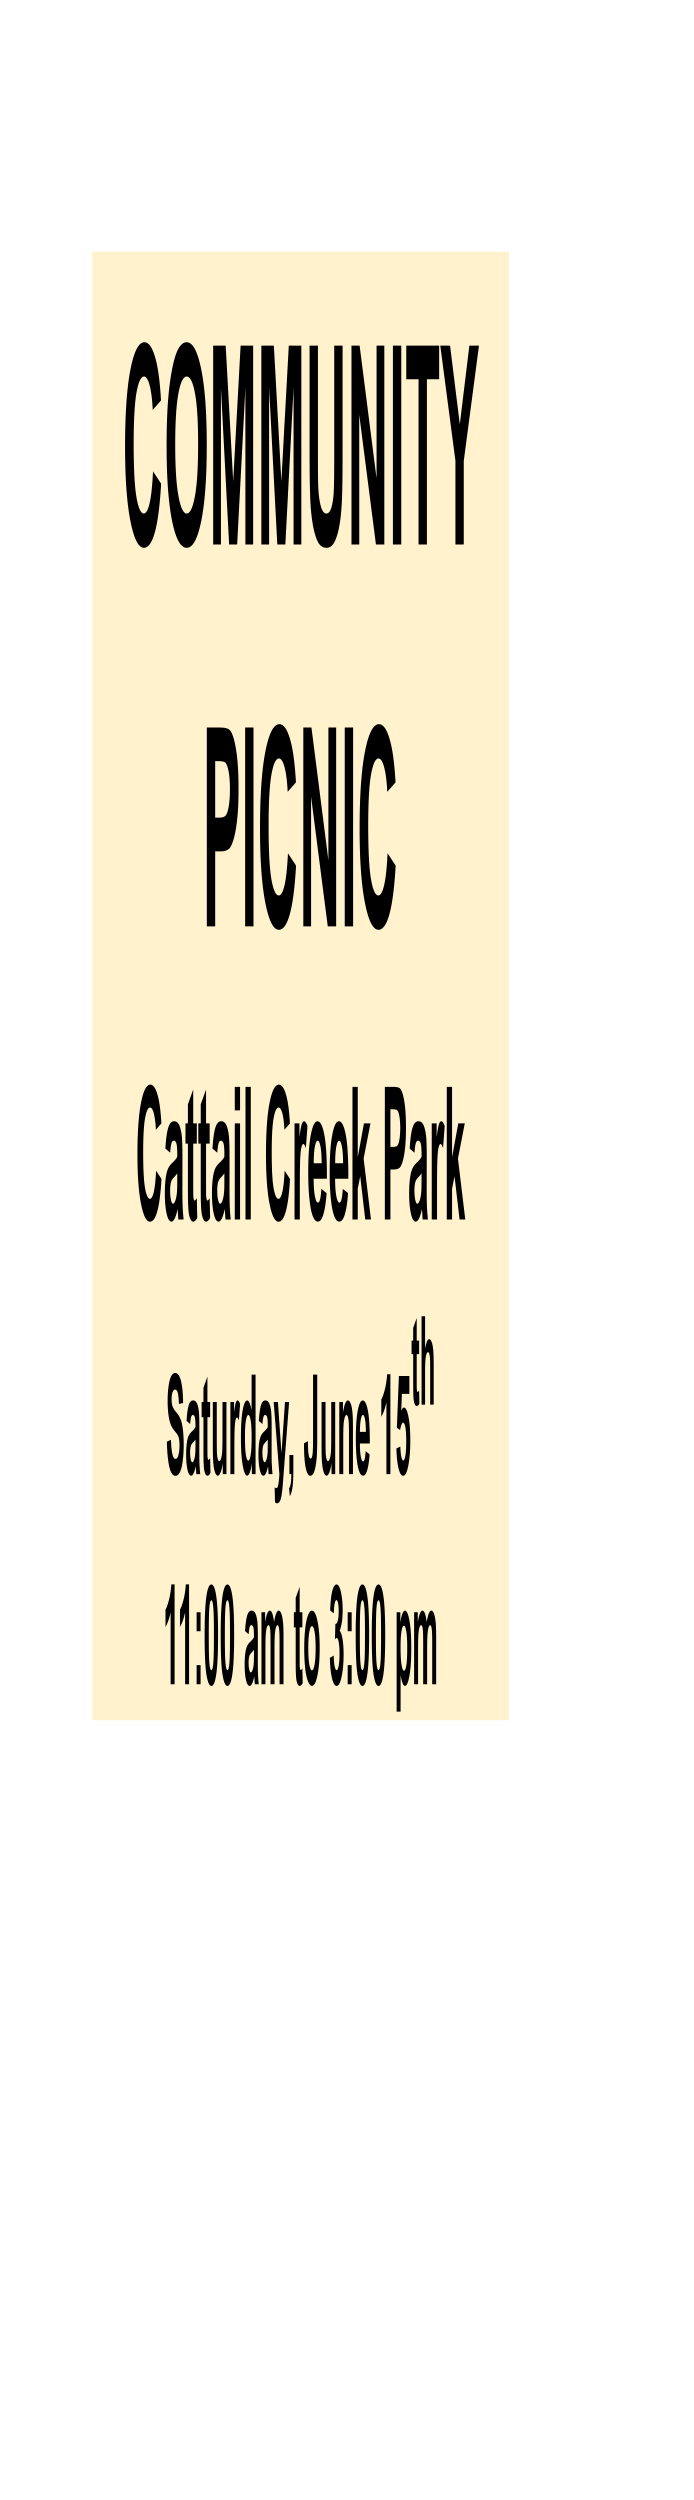 Community Picnic at Cattail Creek Park Saturday June 15th from 11am to 3pm